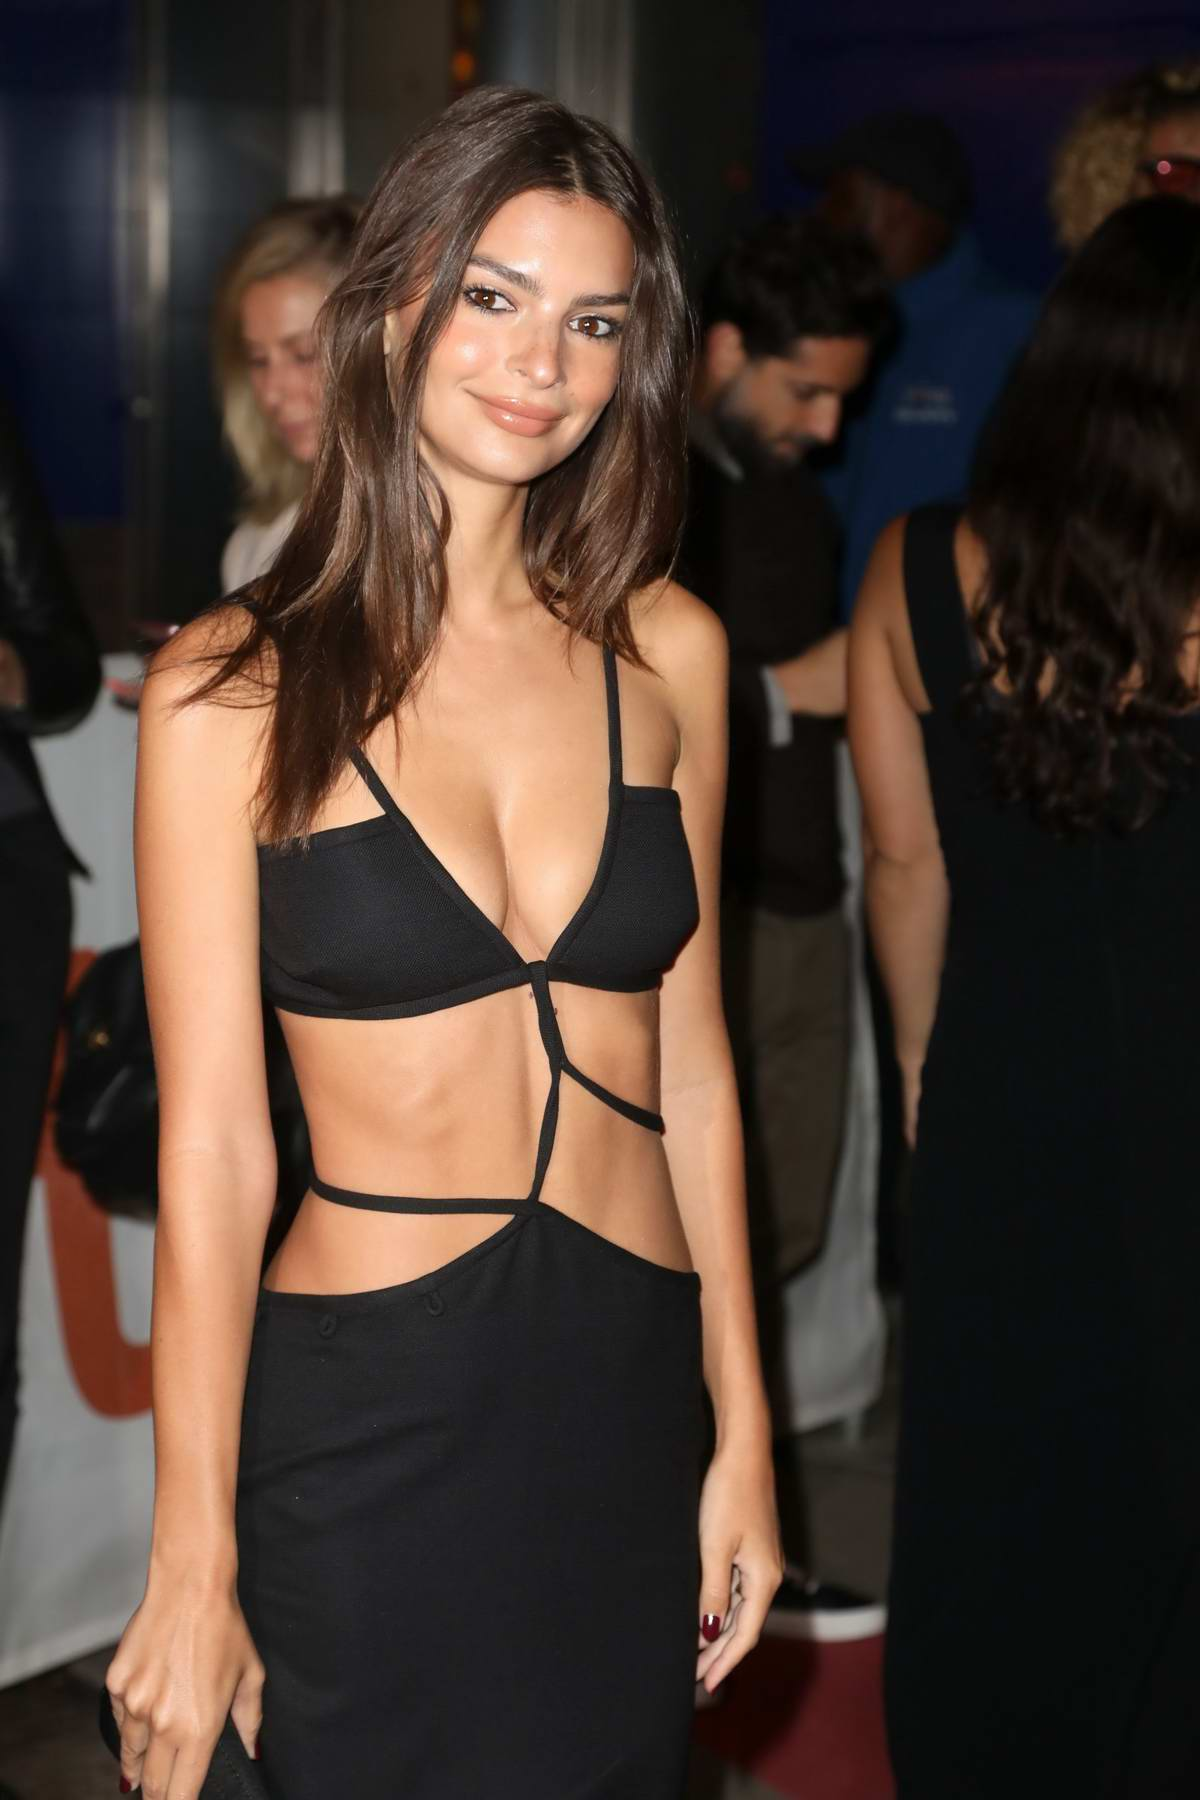 Emily Ratajkowski attends the 'Uncut Gems' Premiere during the 2019 Toronto International Film Festival in Toronto, Canada